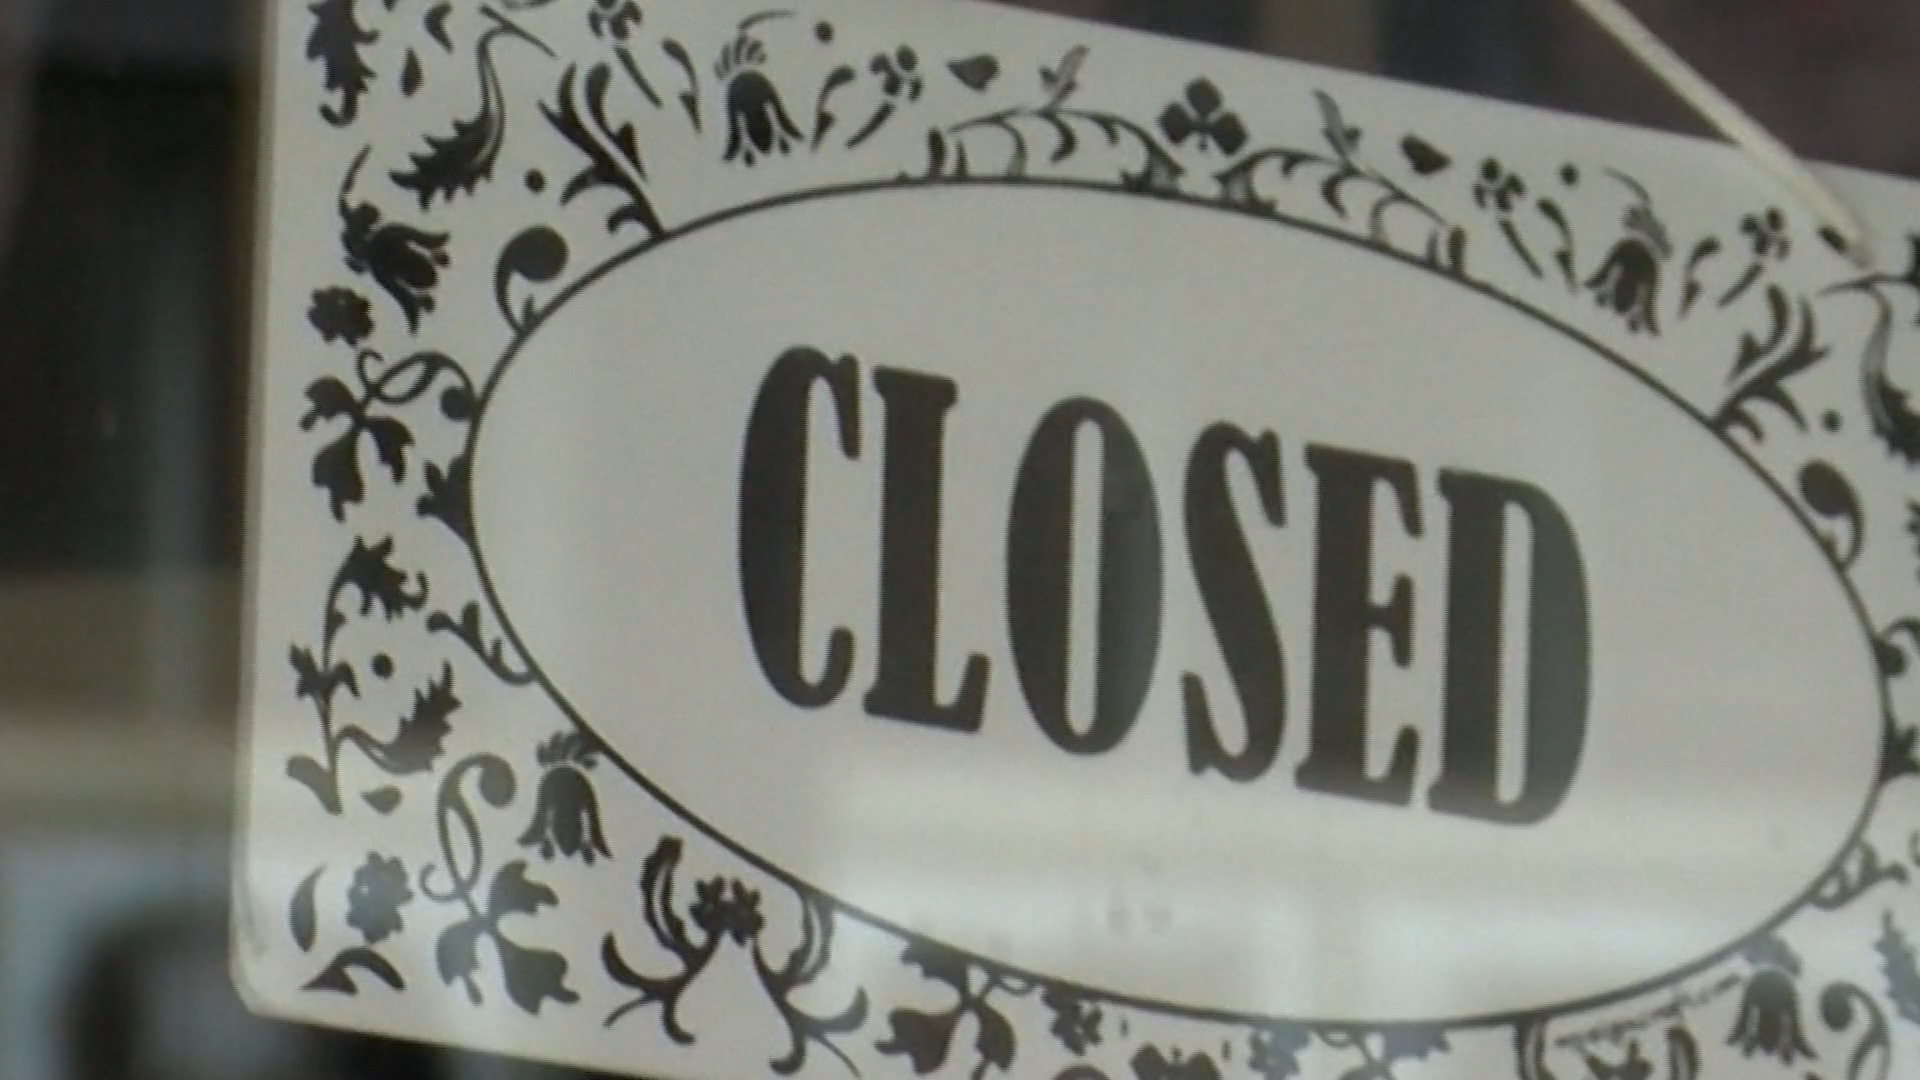 McCormick calls on state to allow small businesses to re-open